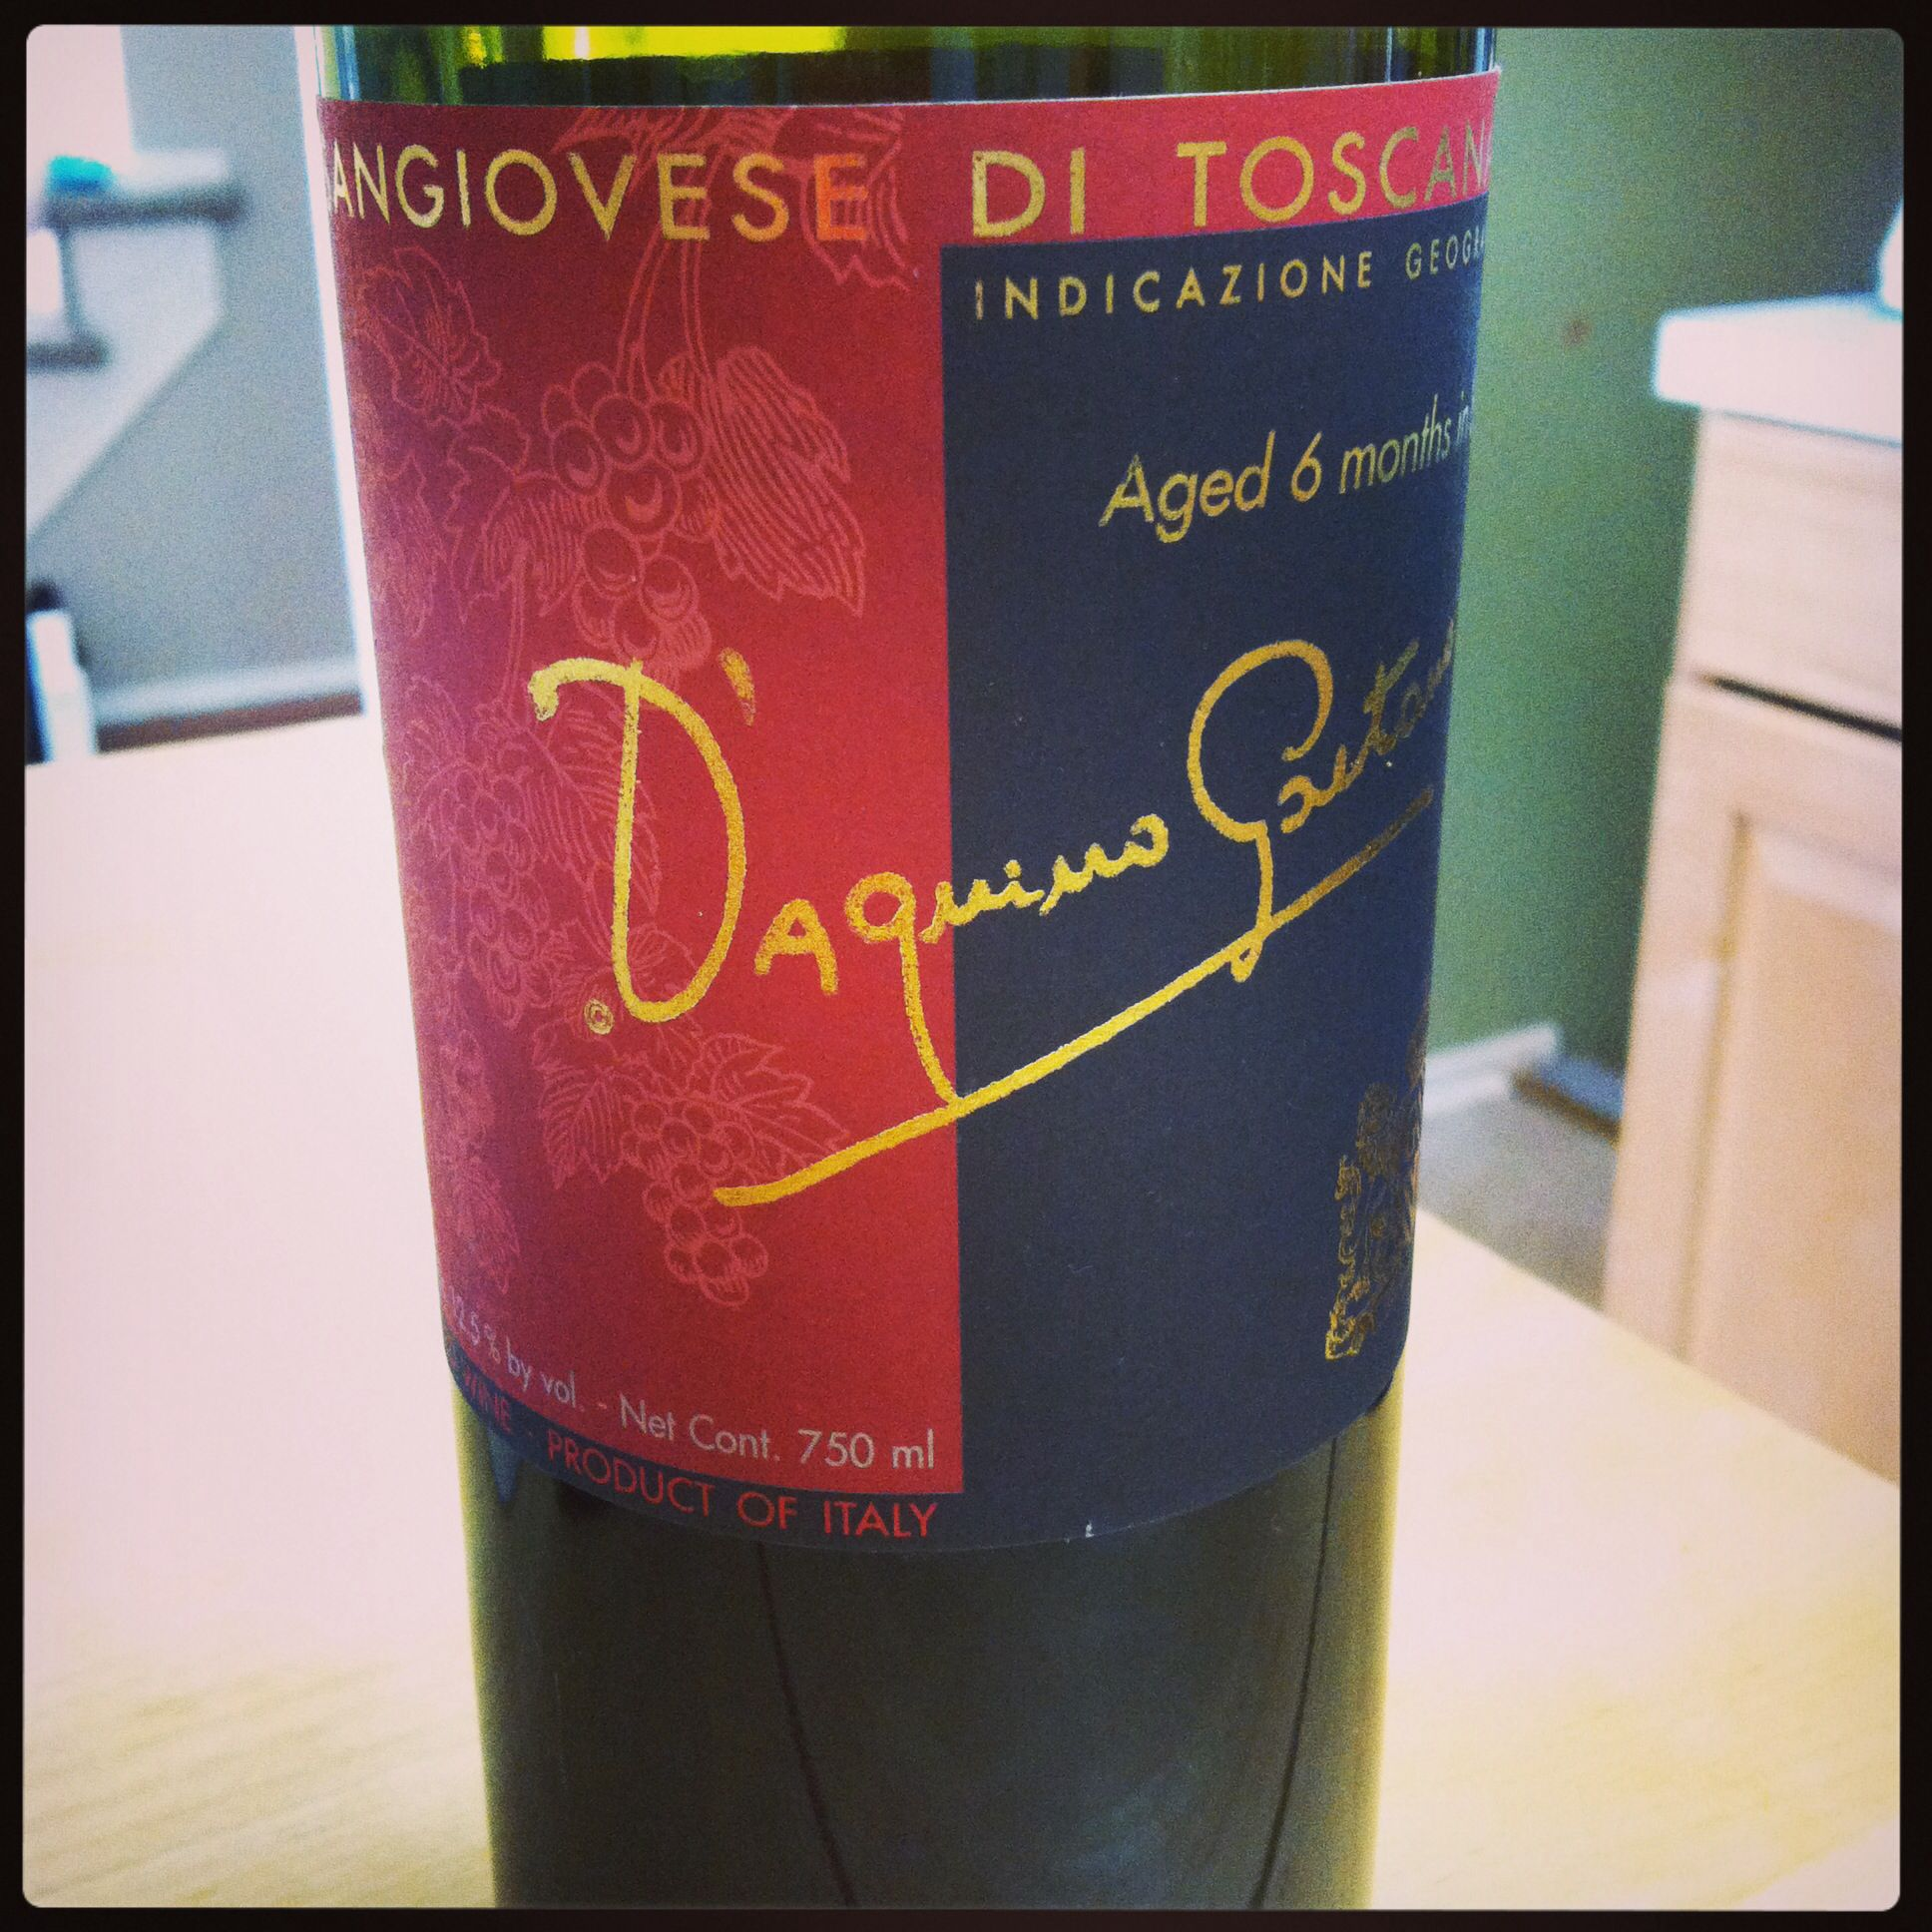 5 Bottle Of Red Wine From Trader Joe S 2012 Sangiovese Di Toscana D Aquino Gaitano Red Wine Wine Bottle Alcoholic Drinks